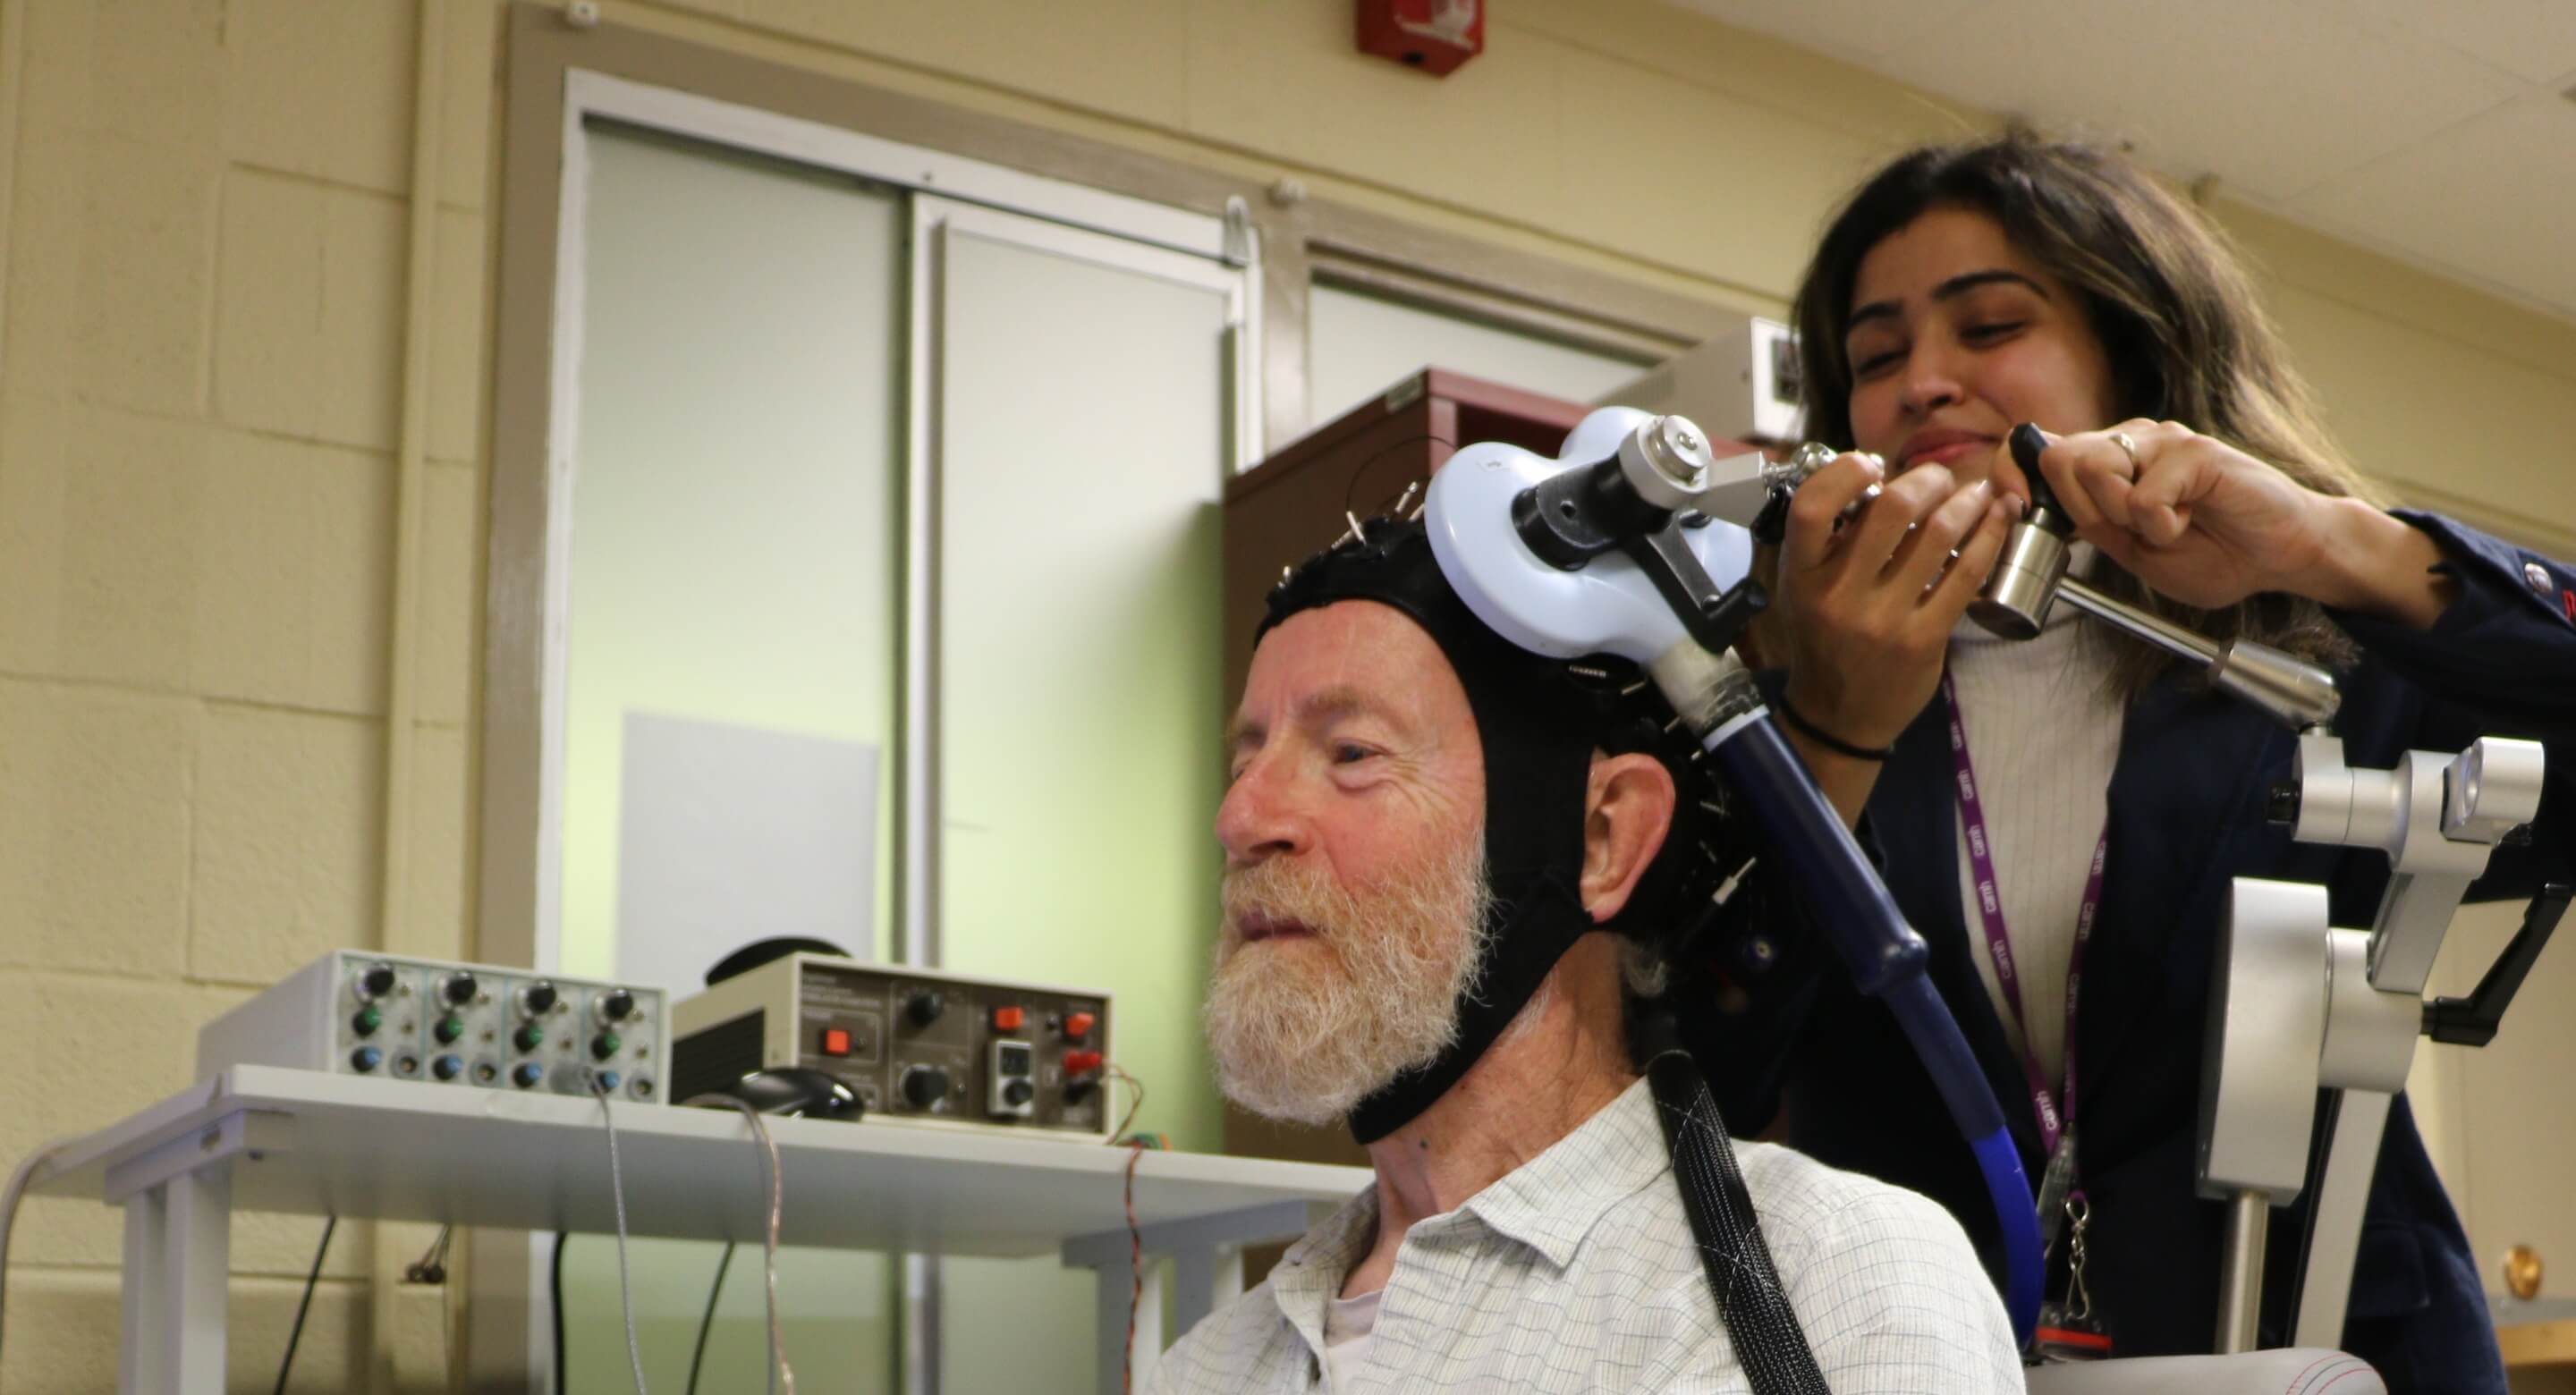 Don Palmer, a research volunteer, and Apoorva Bhandari, Research Analyst in Geriatric Psychiatry at CAMH, demonstrate the innovative, CAMH-developed approach to study brain plasticity in the frontal lobes